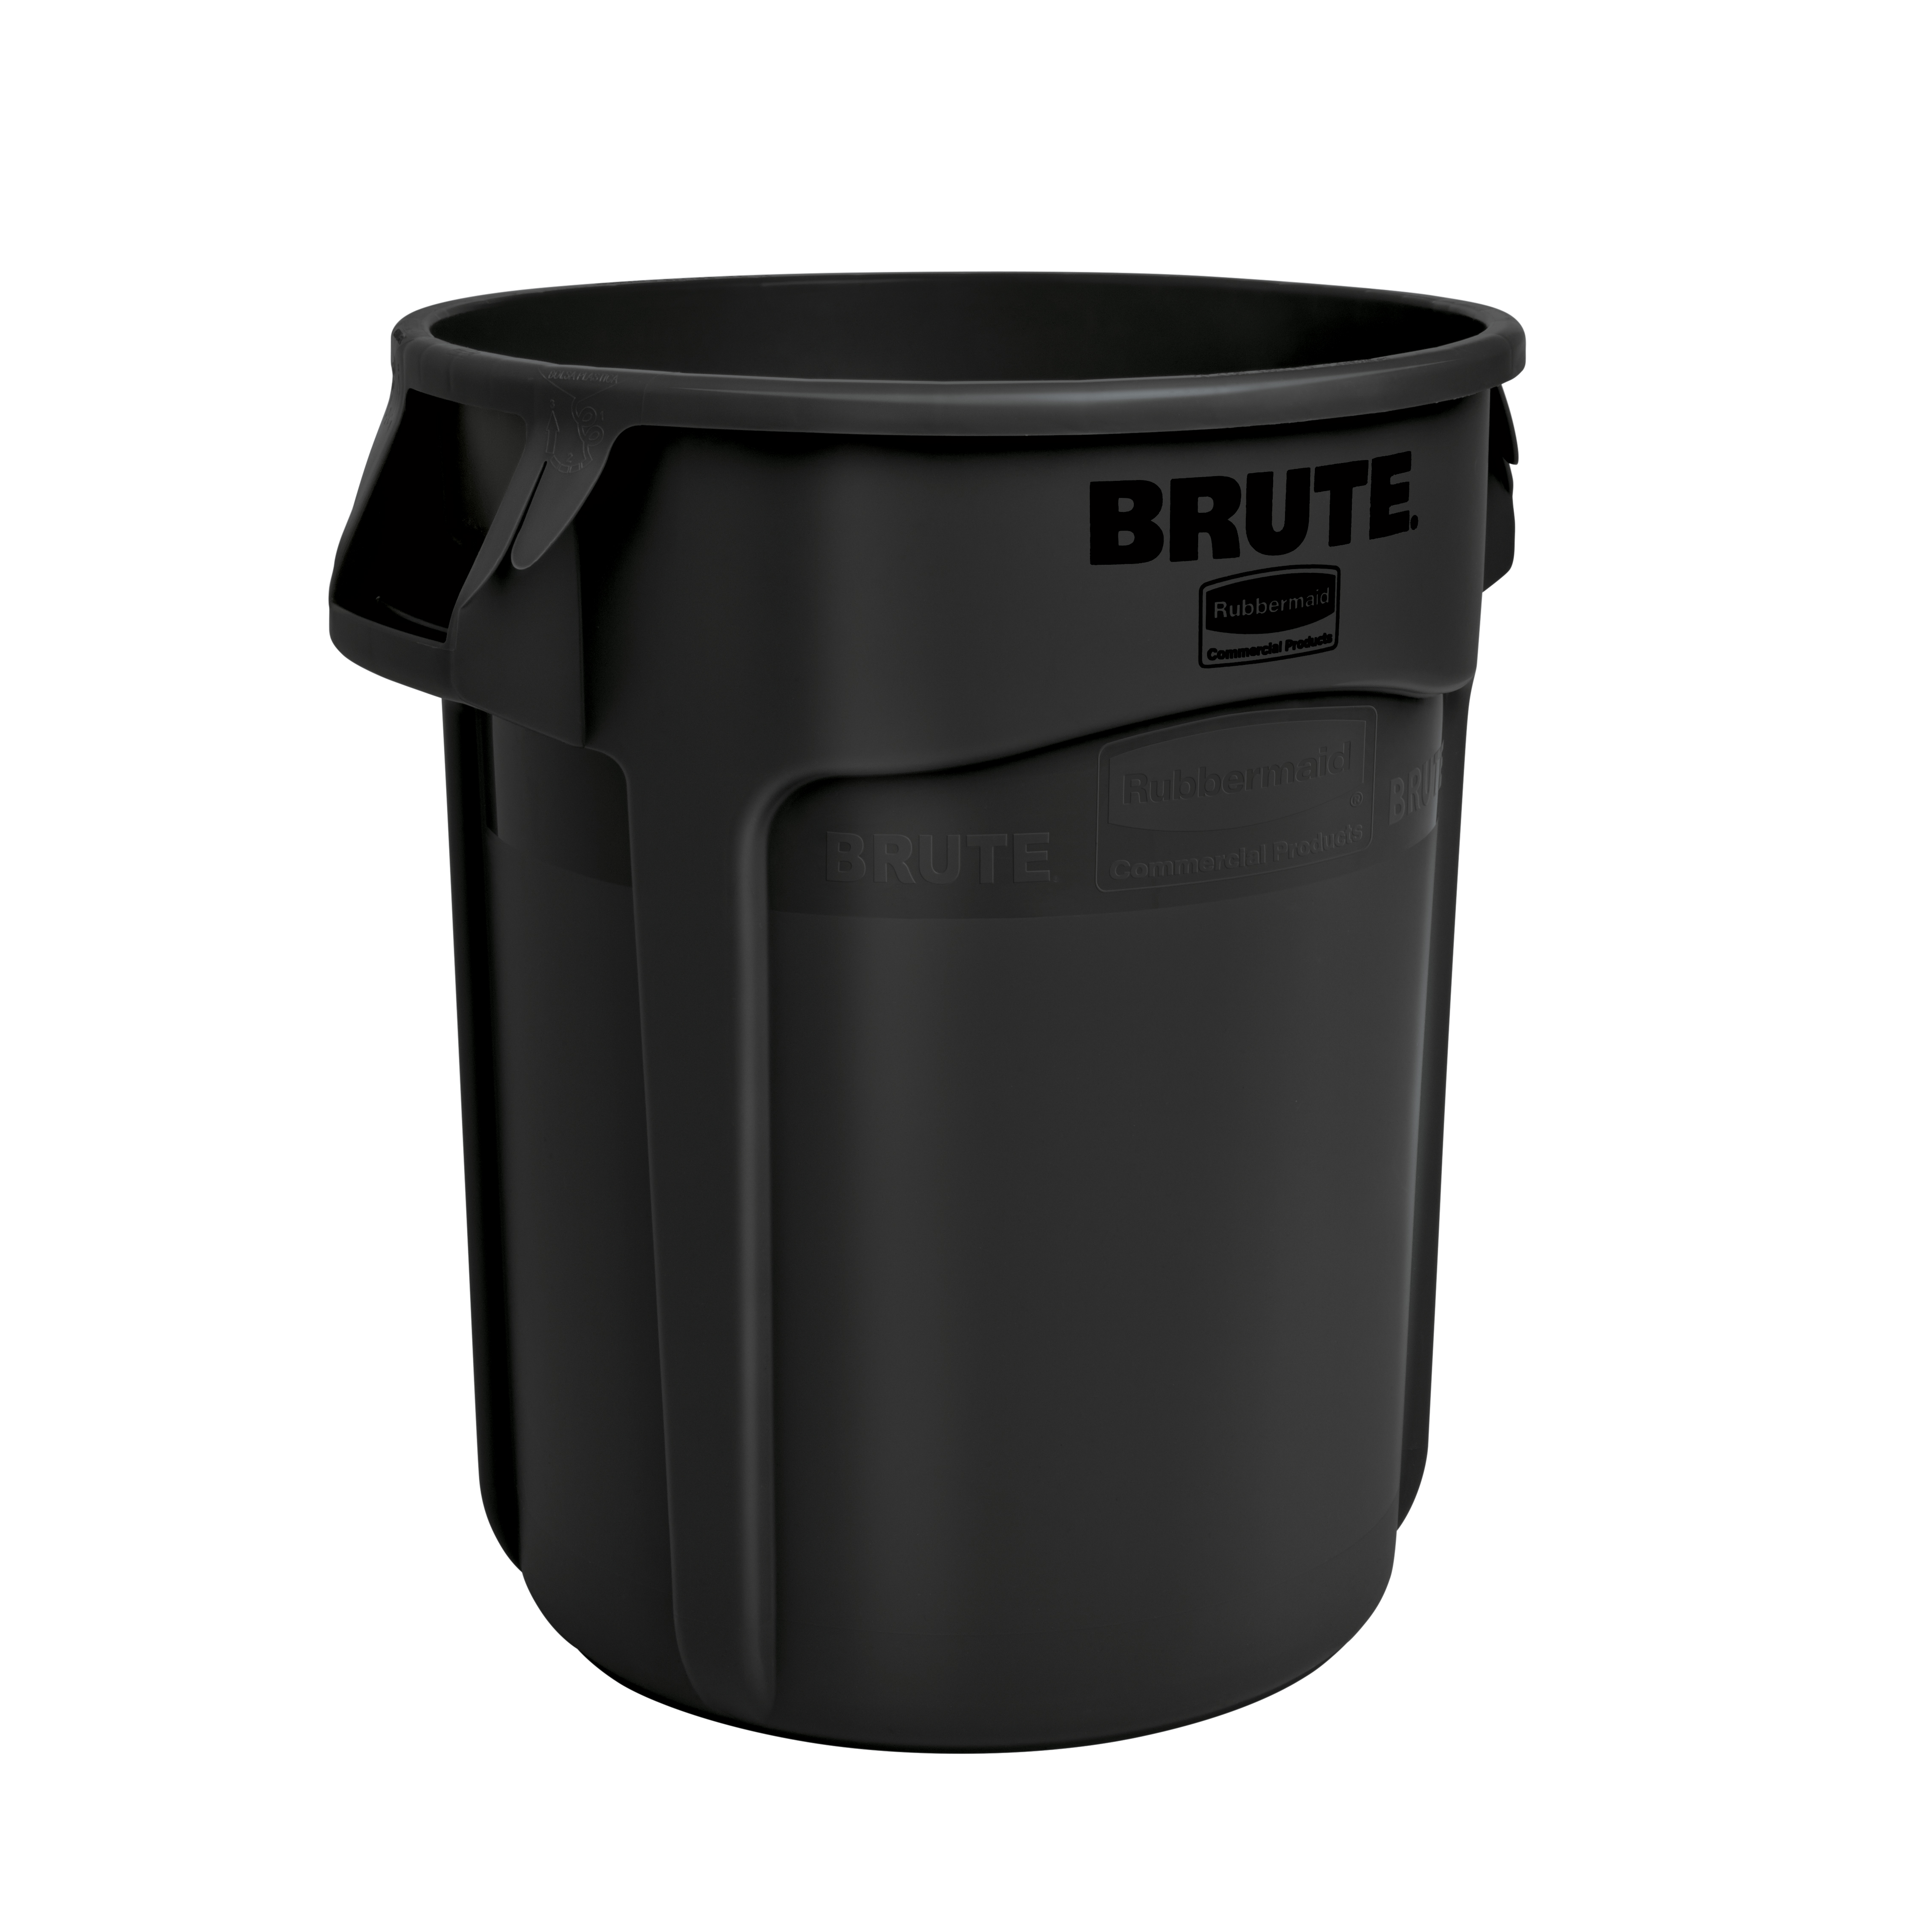 Rubbermaid Commercial Products 1779734 trash can / container, commercial